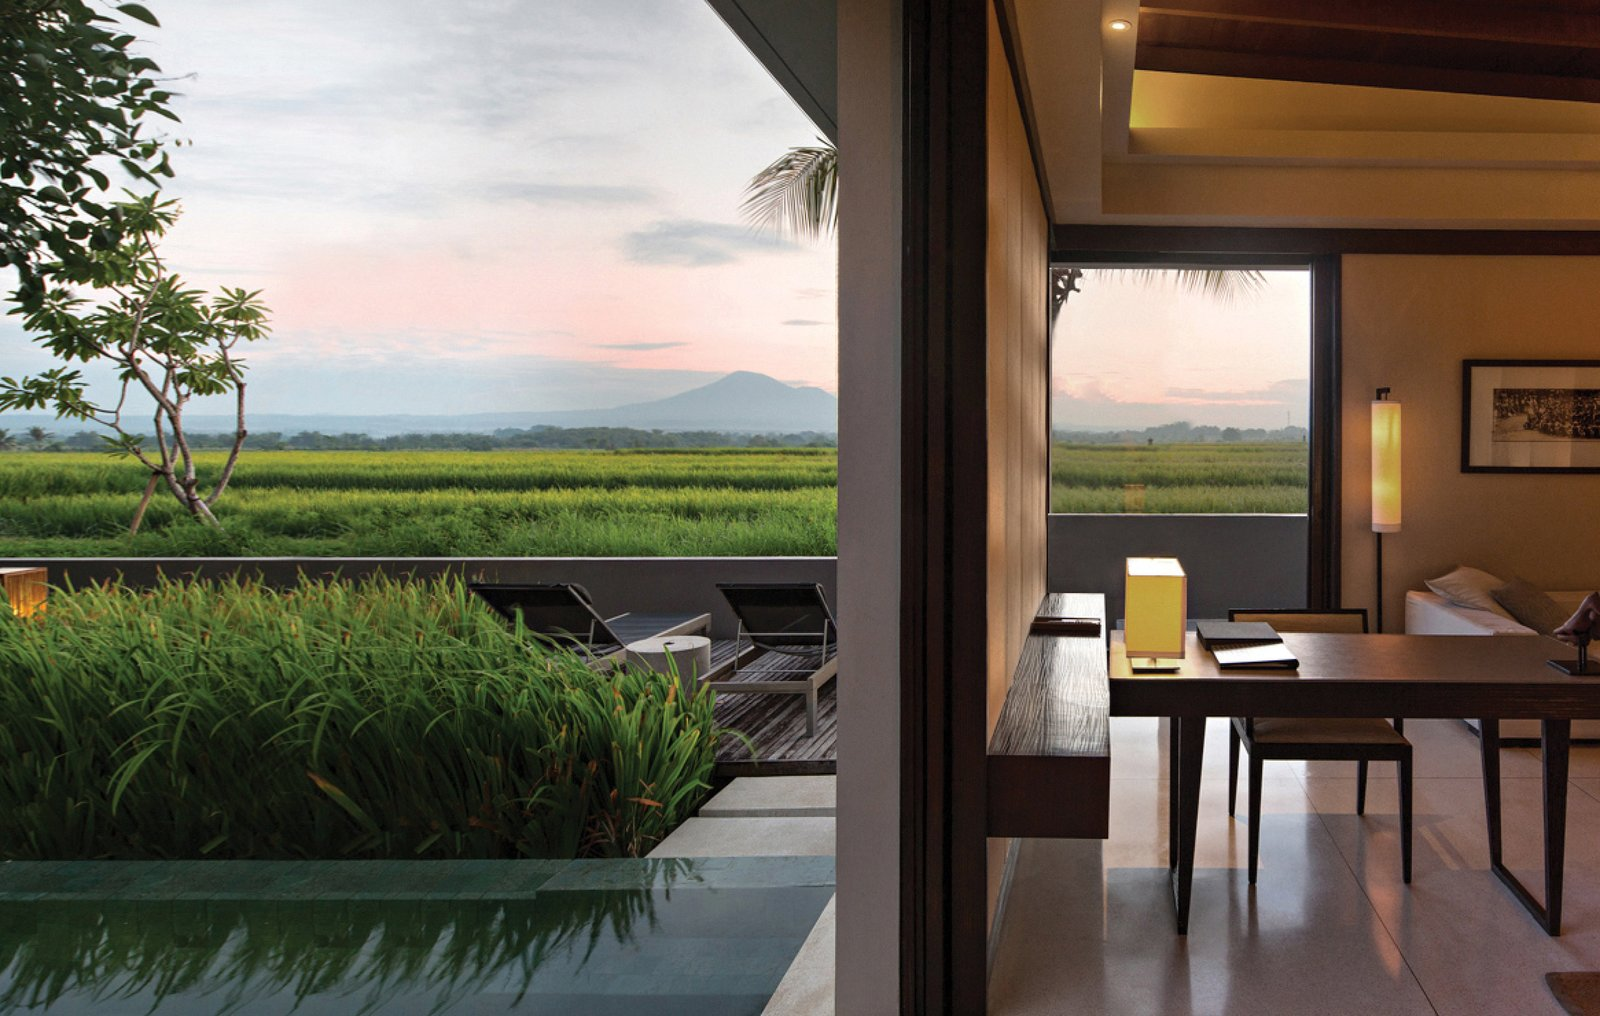 Photo 5 of 9 in A Modern Bali Resort That's Inspired by the Local Landscape and Culture